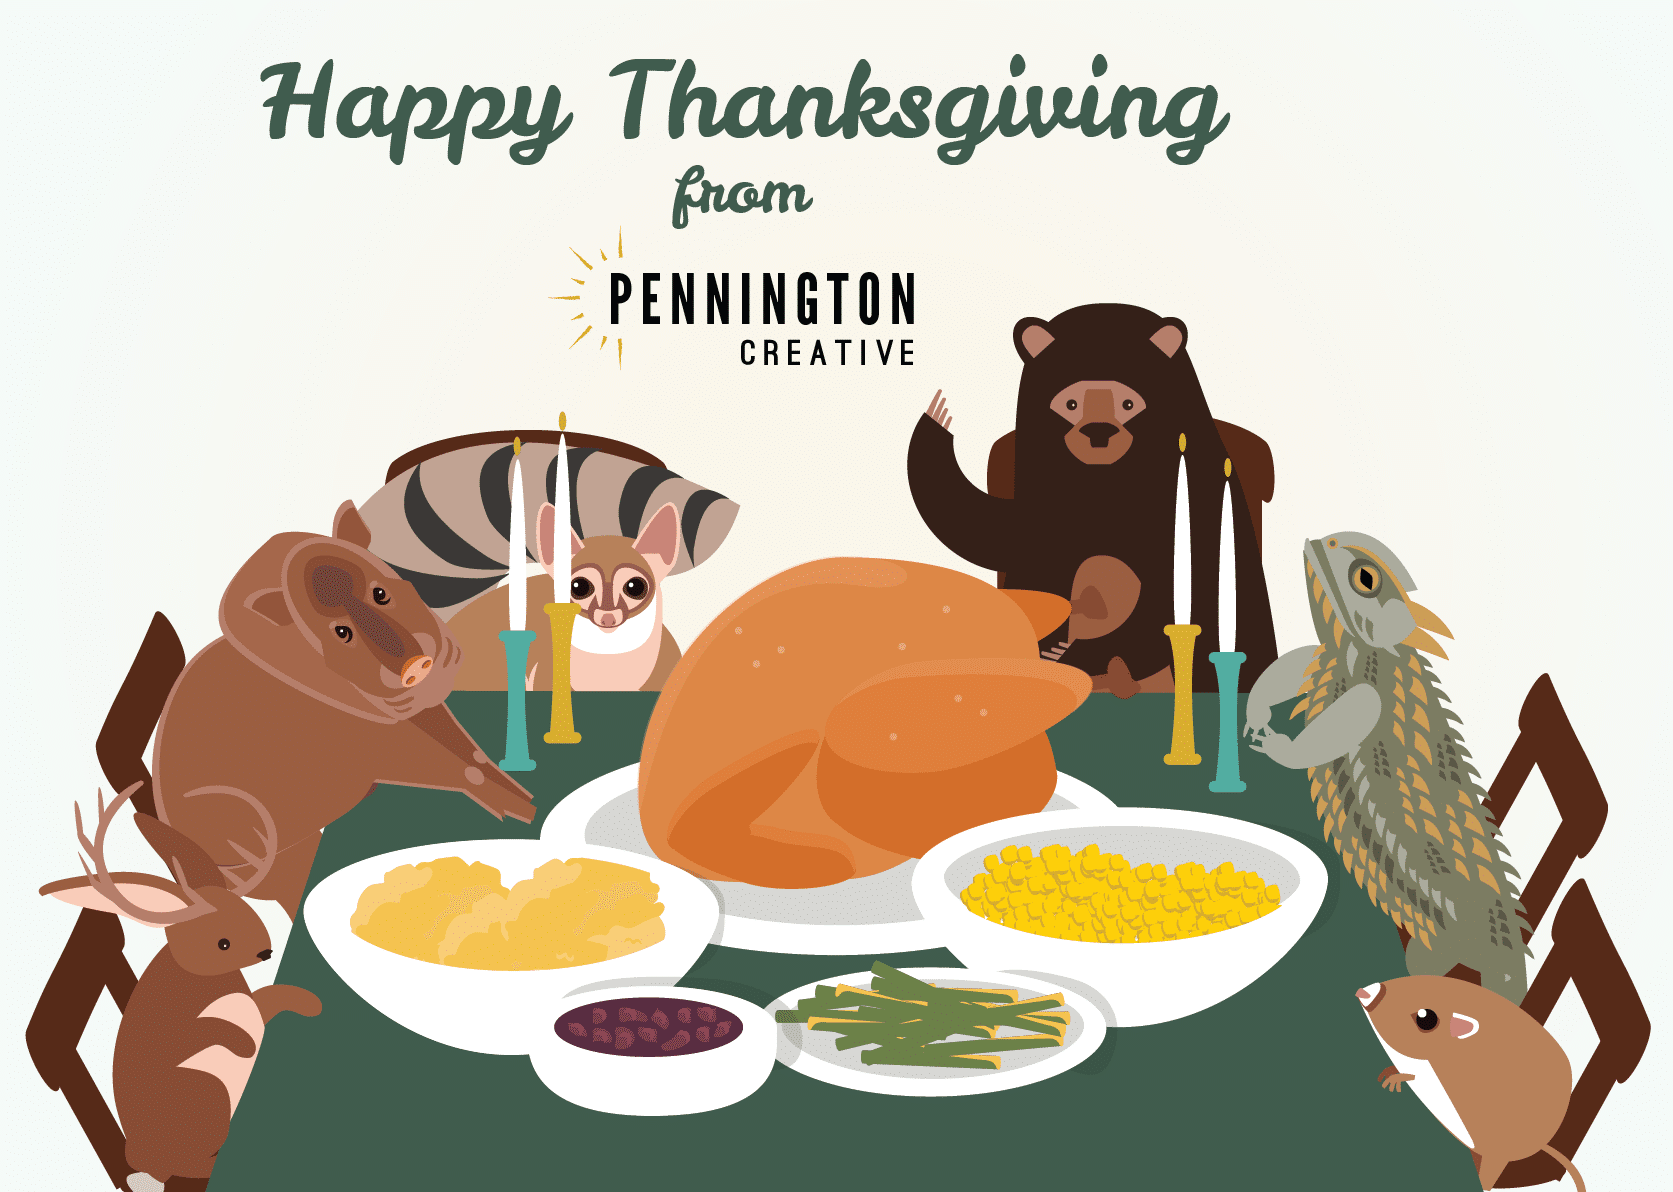 Illustration of desert animals around a Thanksgiving table.